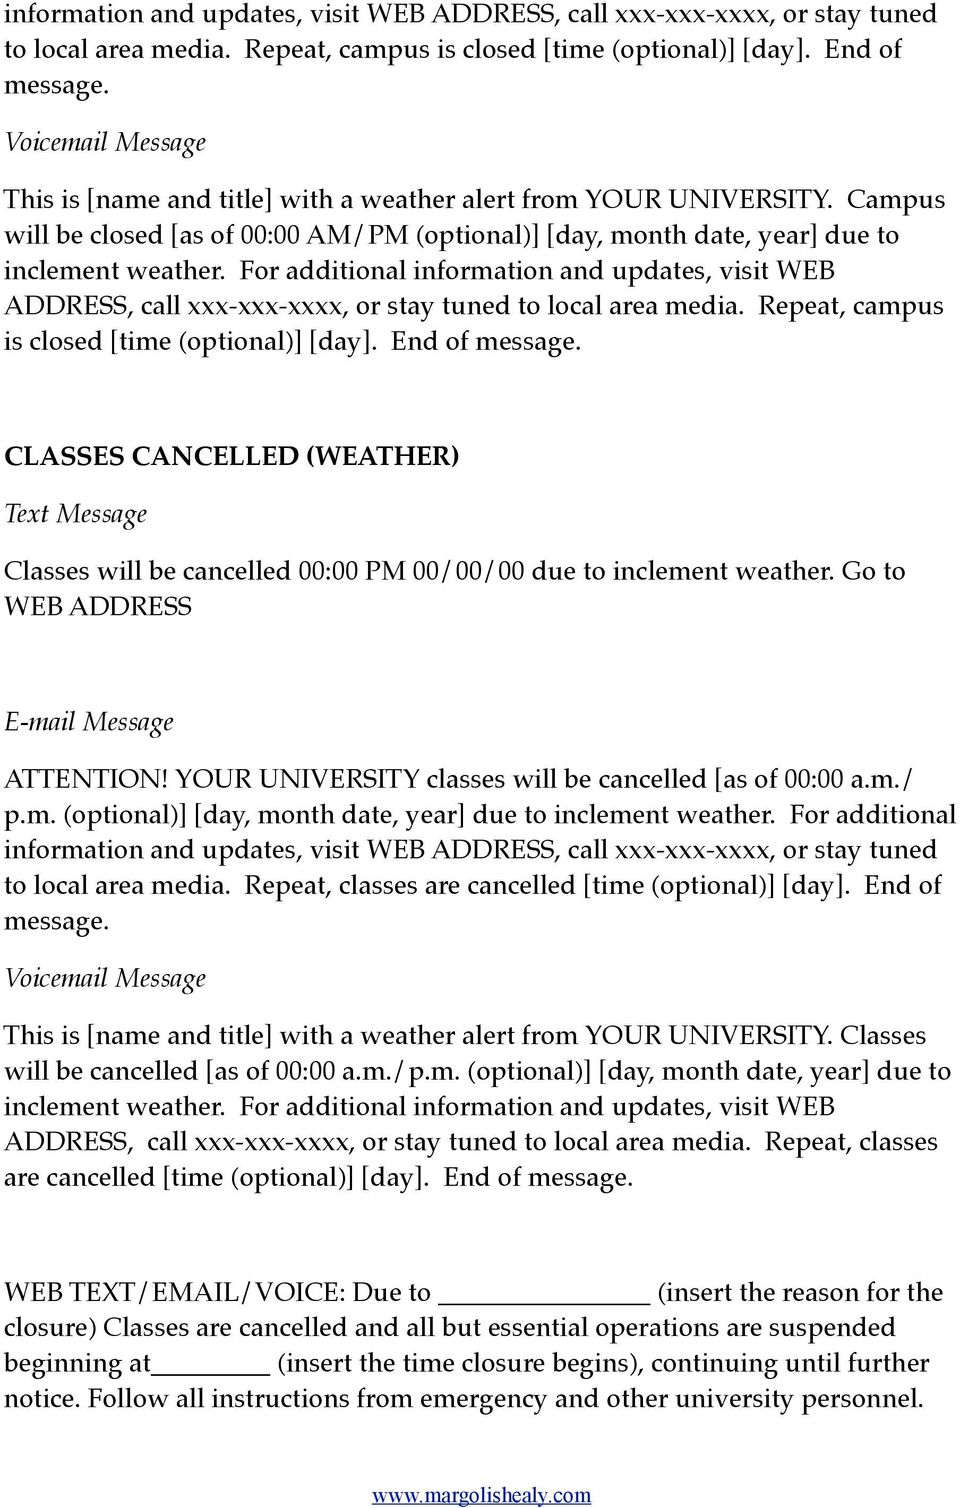 For additional  CLASSES CANCELLED (WEATHER) Classes will be cancelled 00:00 PM 00/00/00 due to inclement weather. Go to WEB ADDRESS ATTENTION! YOUR UNIVERSITY classes will be cancelled [as of 00:00 a.